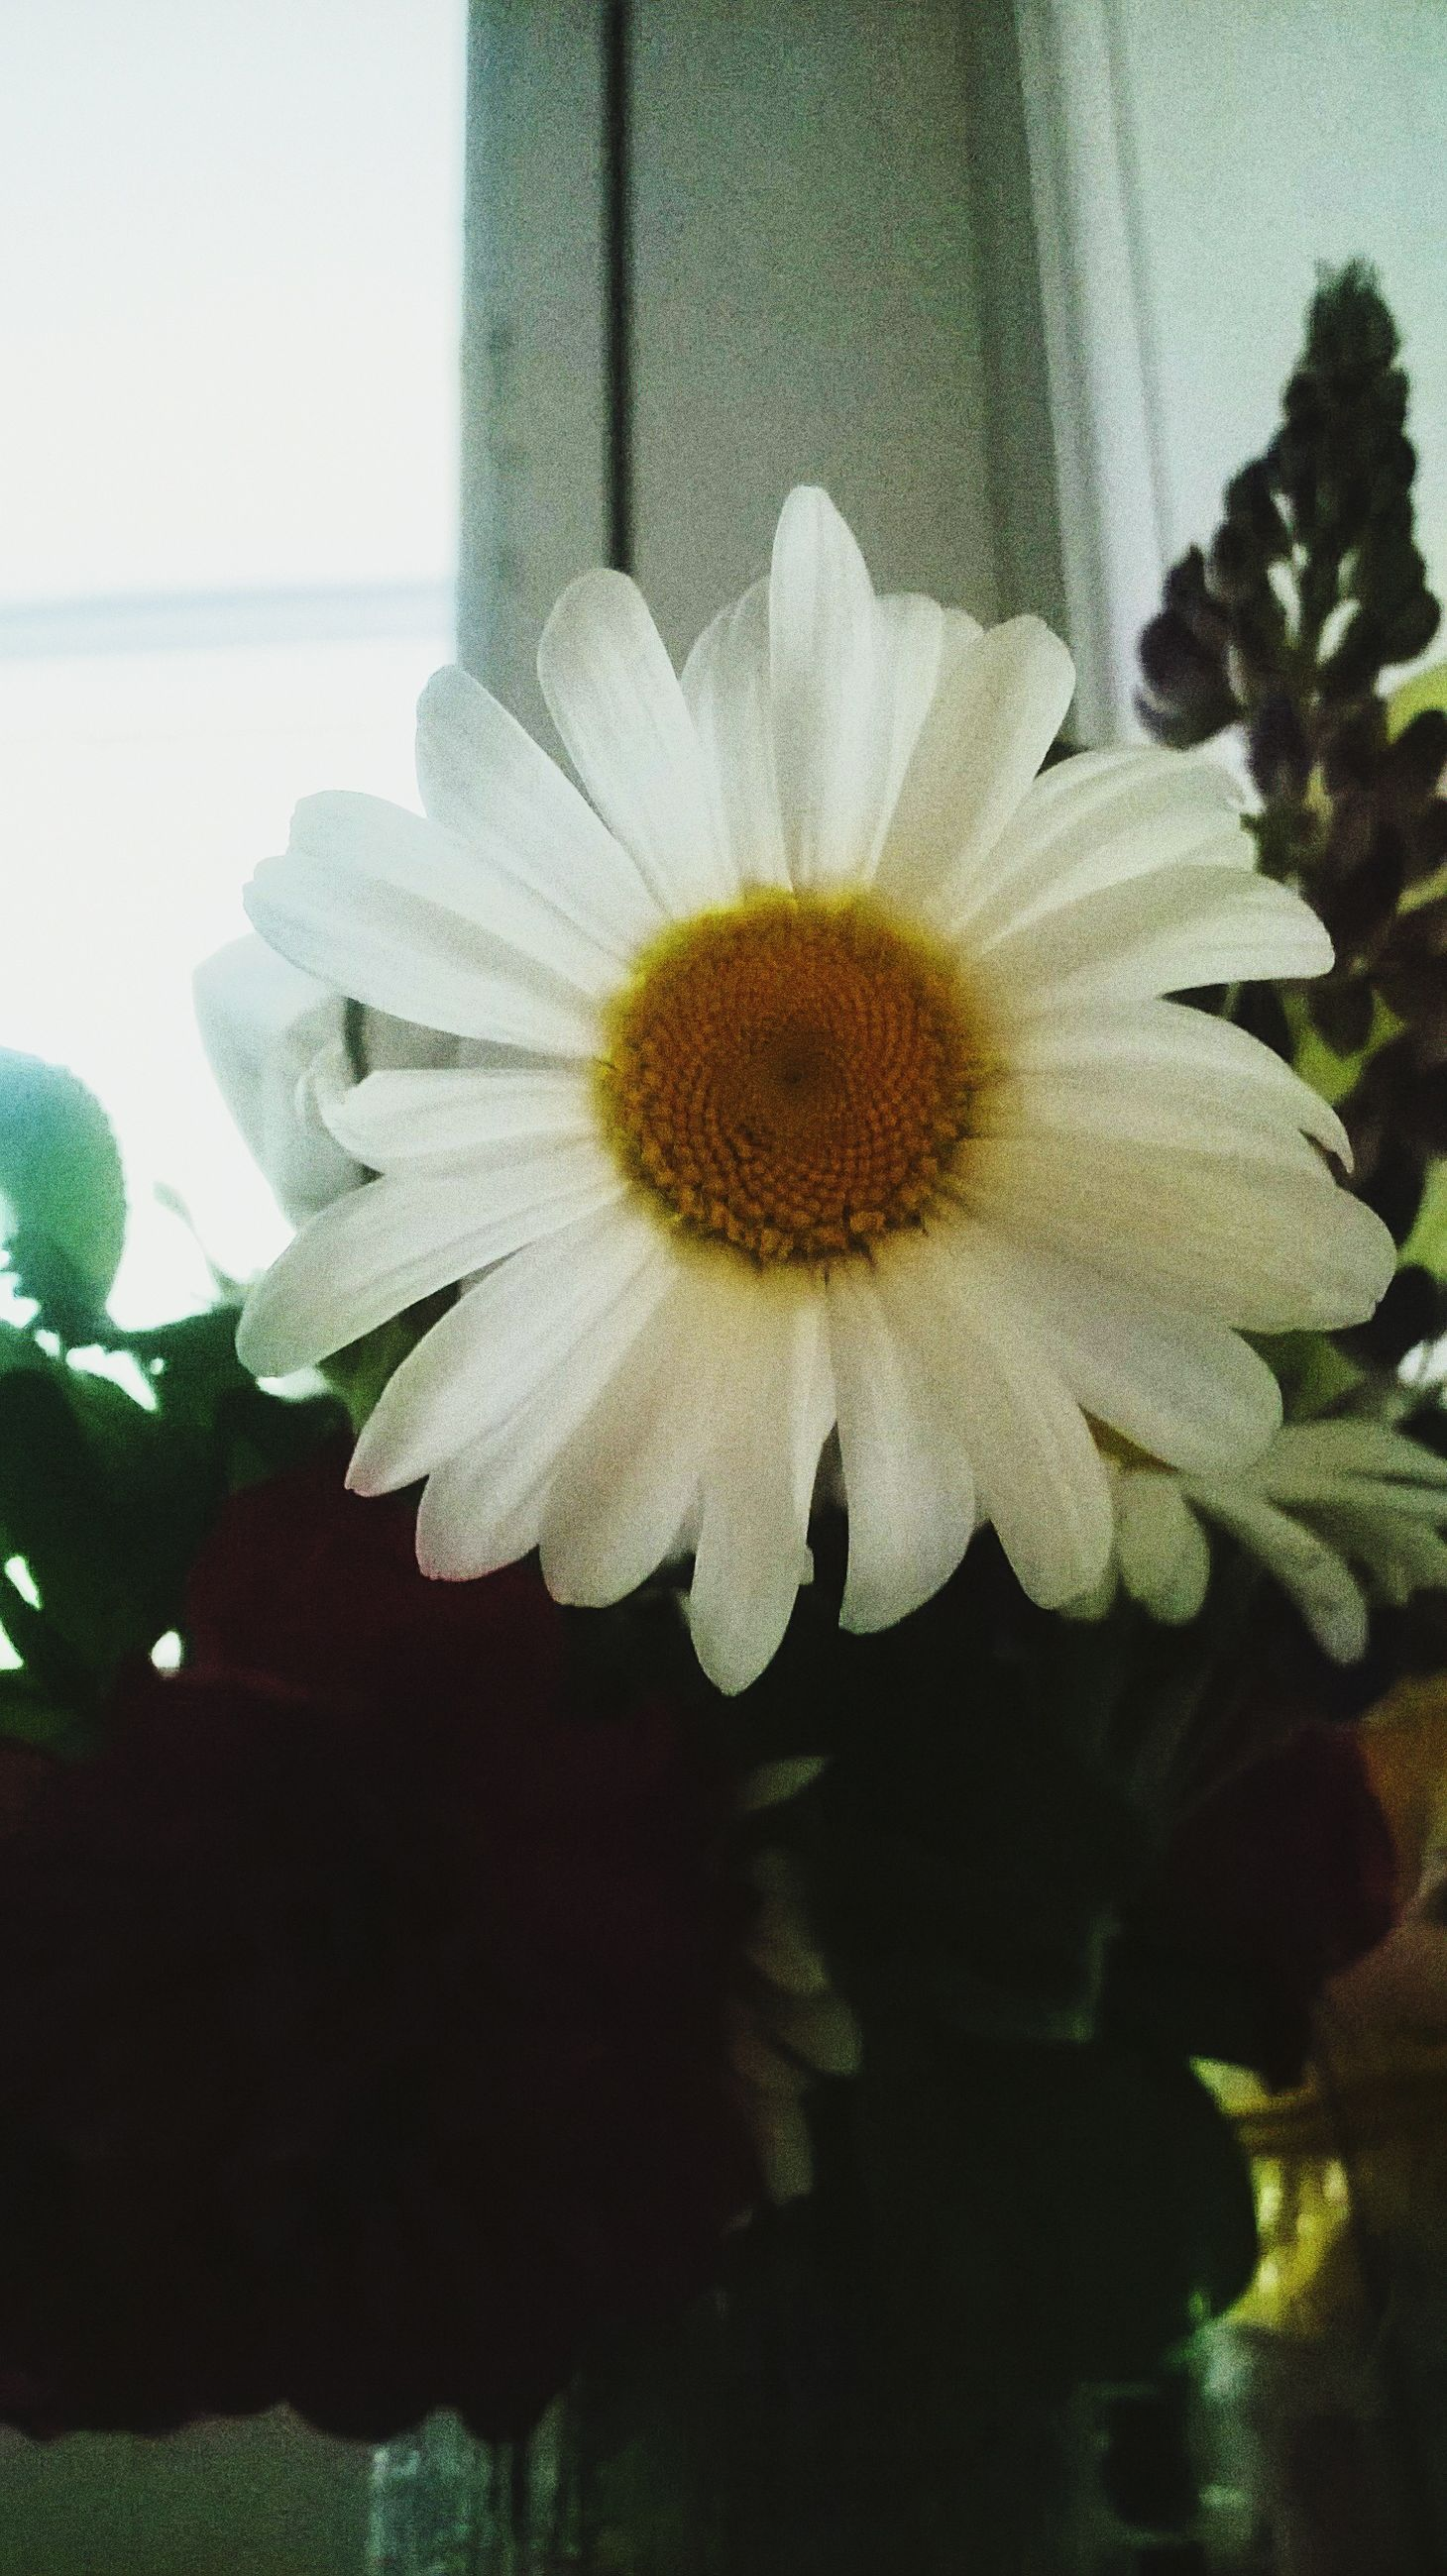 flower, petal, flower head, freshness, fragility, growth, white color, beauty in nature, close-up, single flower, blooming, pollen, plant, nature, indoors, daisy, in bloom, high angle view, no people, day